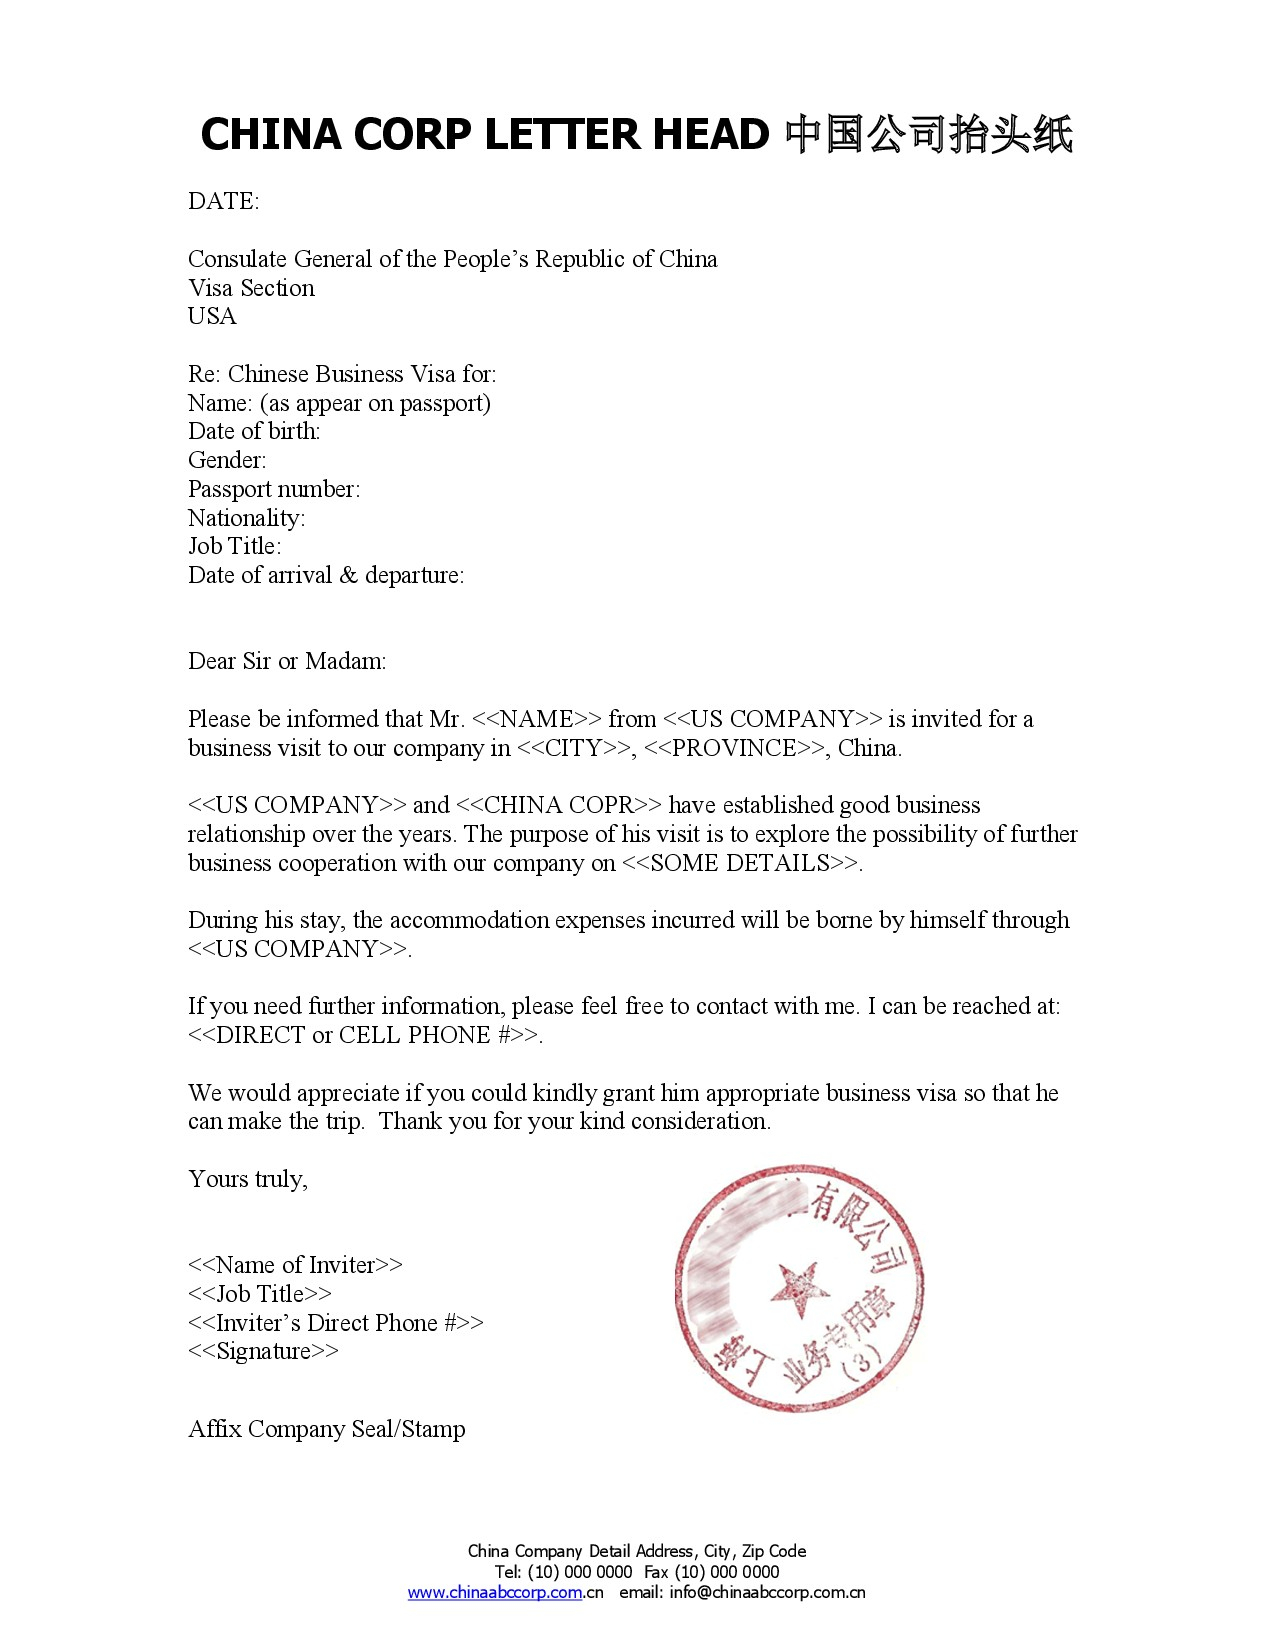 invitation letter for china visa template example-Invitation Letter Sample Swiss Visa Fresh Invitation Letter Format For Embassy Best Business Visa New Format Invitation Letter For Business Visa To China 4-c